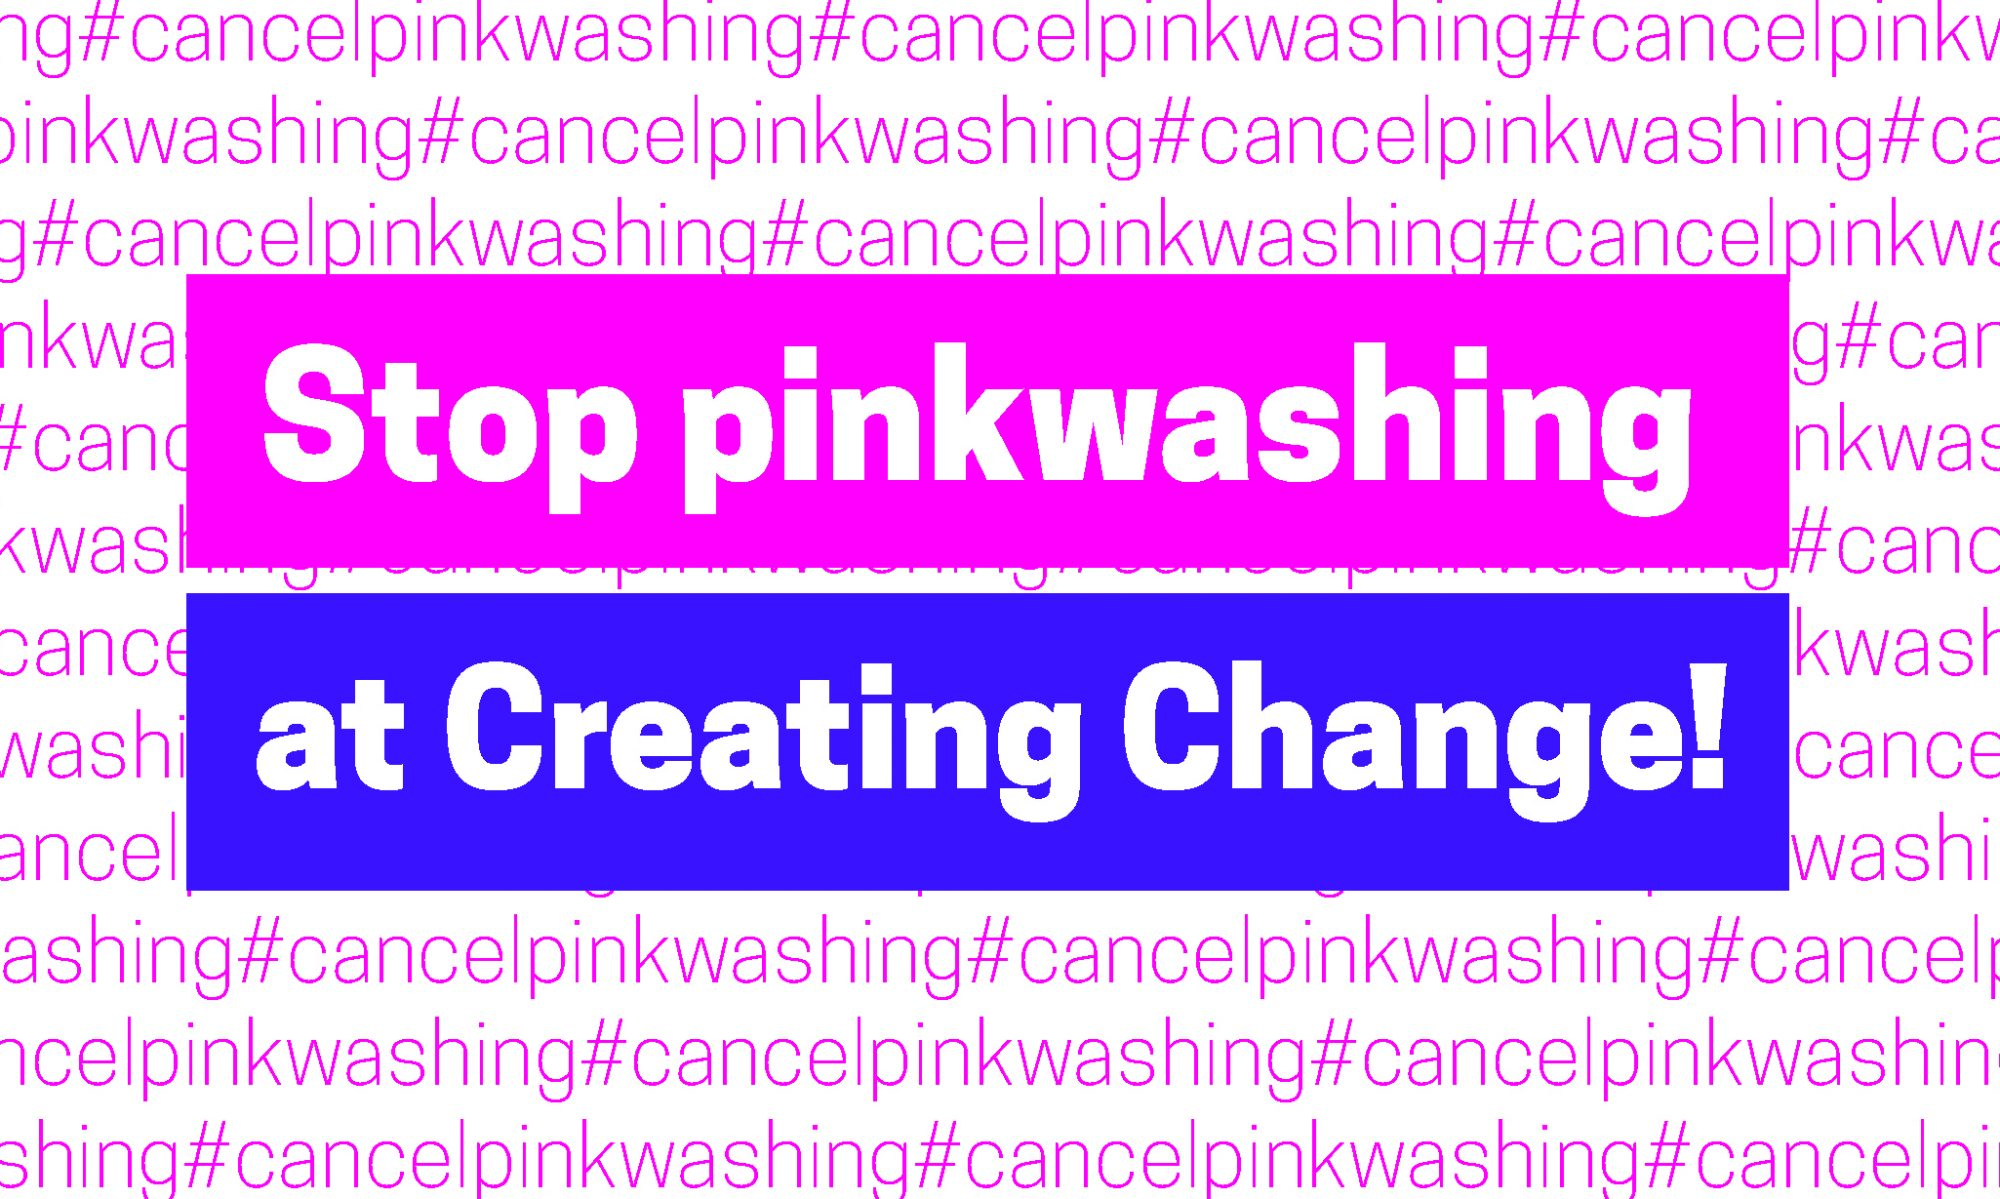 #CancelPinkwashing